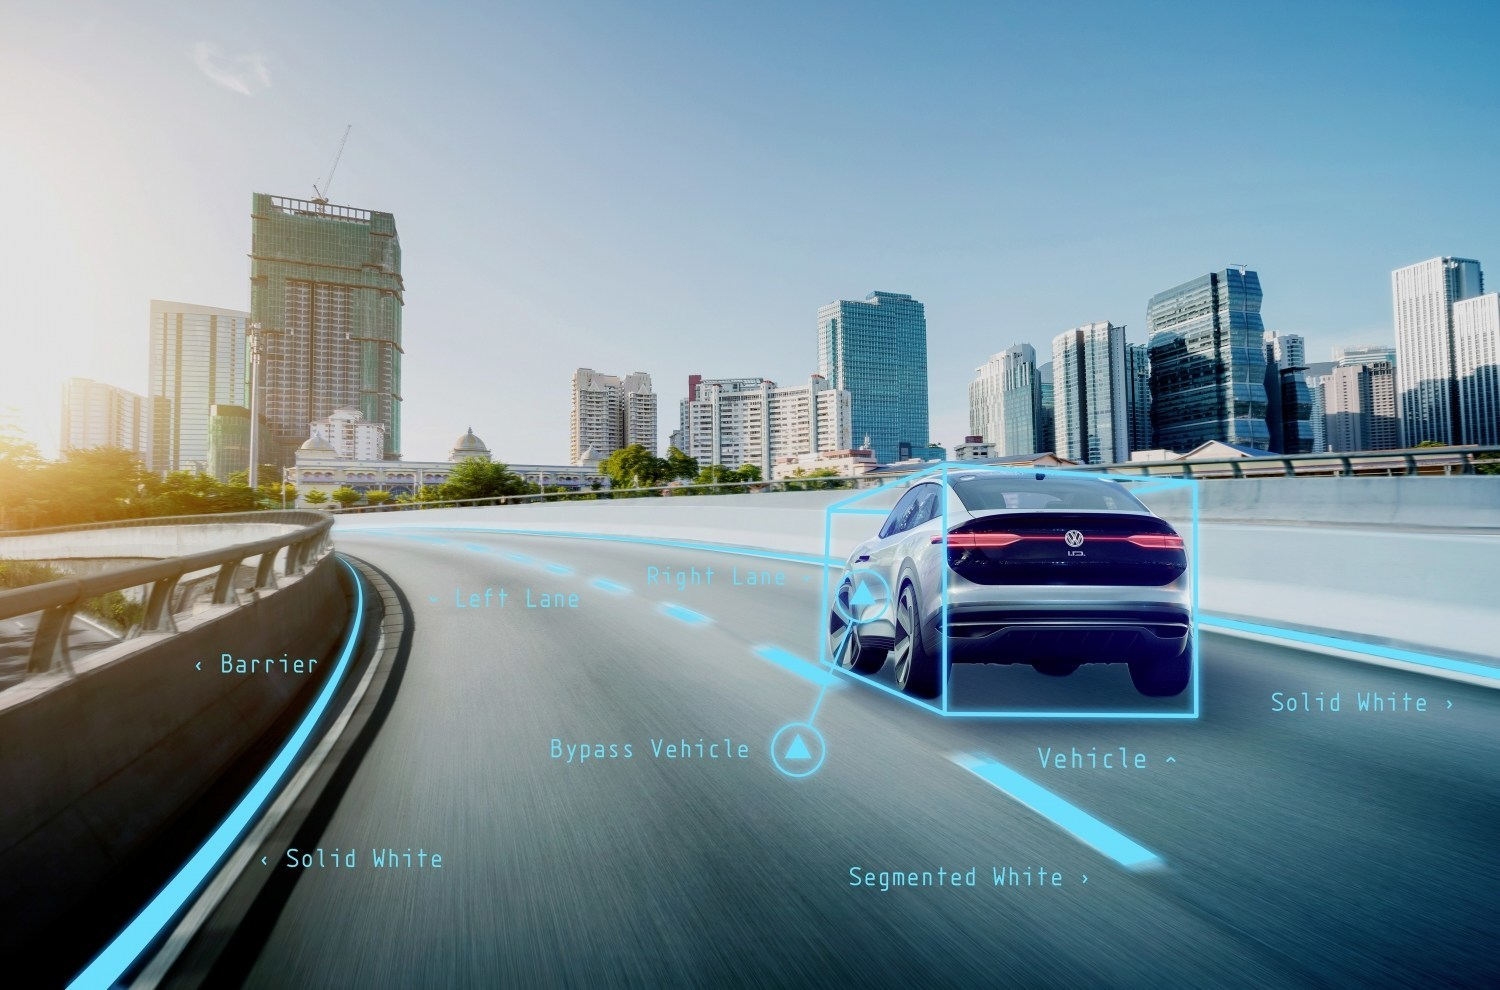 NCOA and Volkswagen Study: 70% of Older Drivers Embrace Self-Driving Vehicles and Ride-Hailing Services